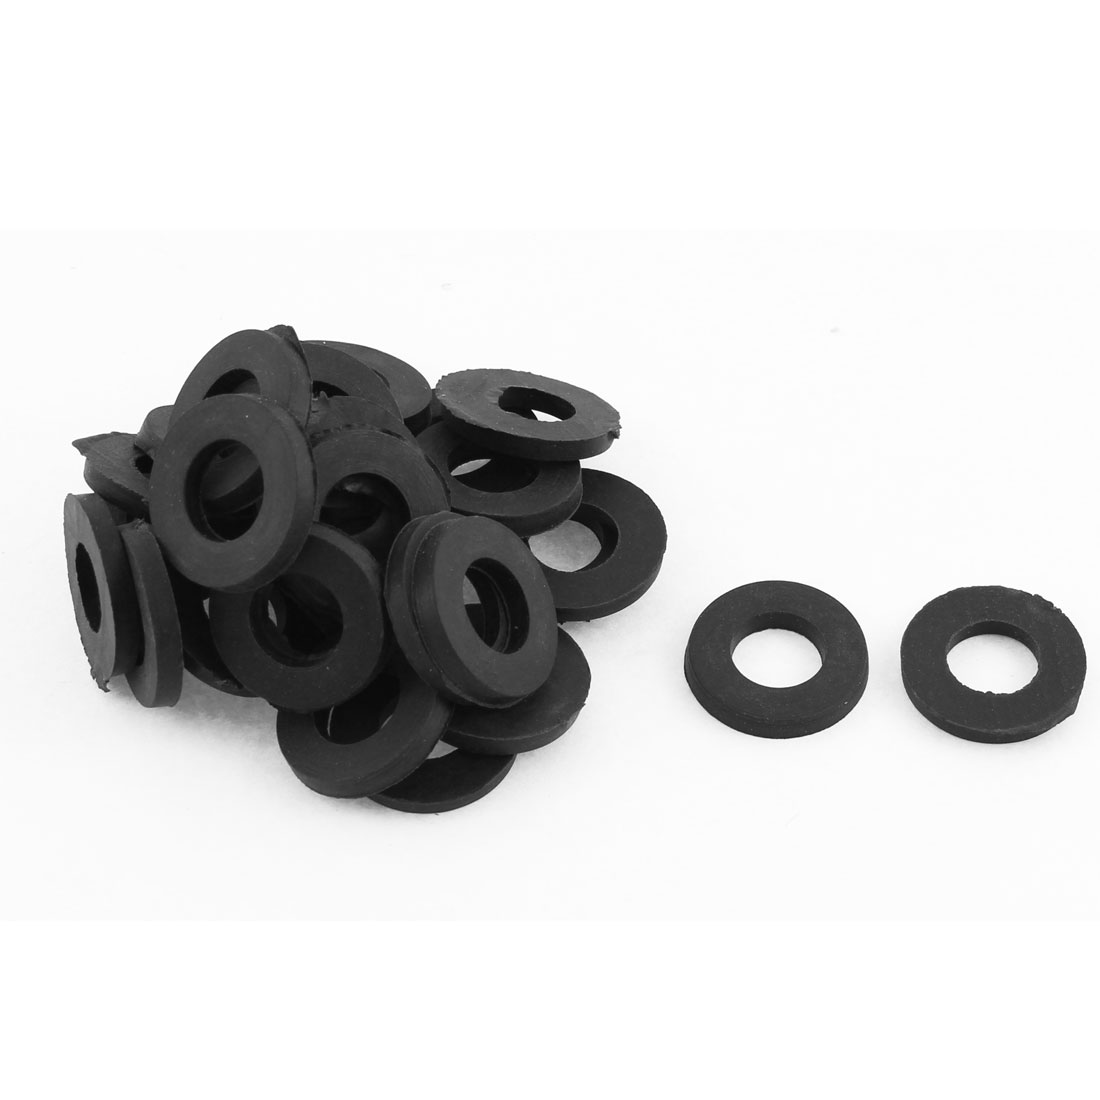 30PCS 19x10x3mm Black Rubber Washer O Ring Seal Tap Sink Water Tube Gasket Plumbing Sealing